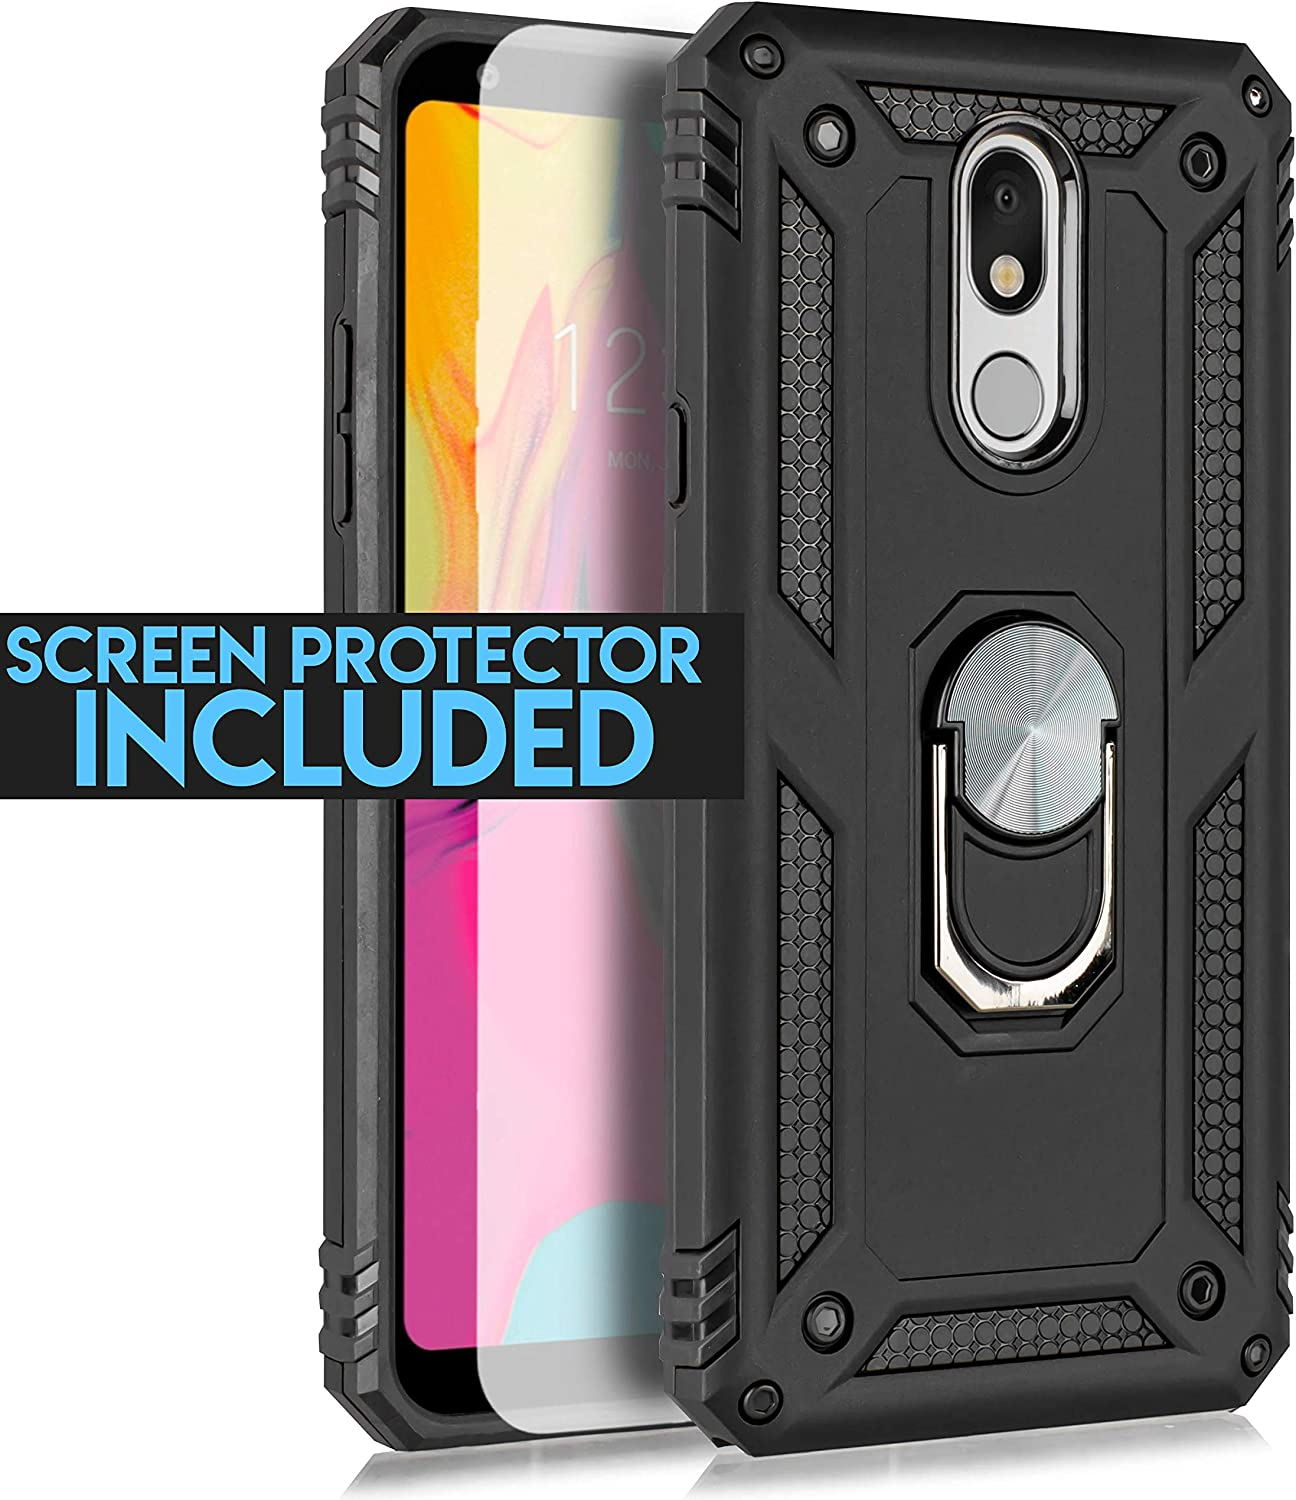 Stylo 5 Case,LG Stylo 5 Magnetic Shockproof Adsorption Hard Armor Ring Holder with Kickstand and Car Mount Phone case [Tempered Glass Screen] (Black)